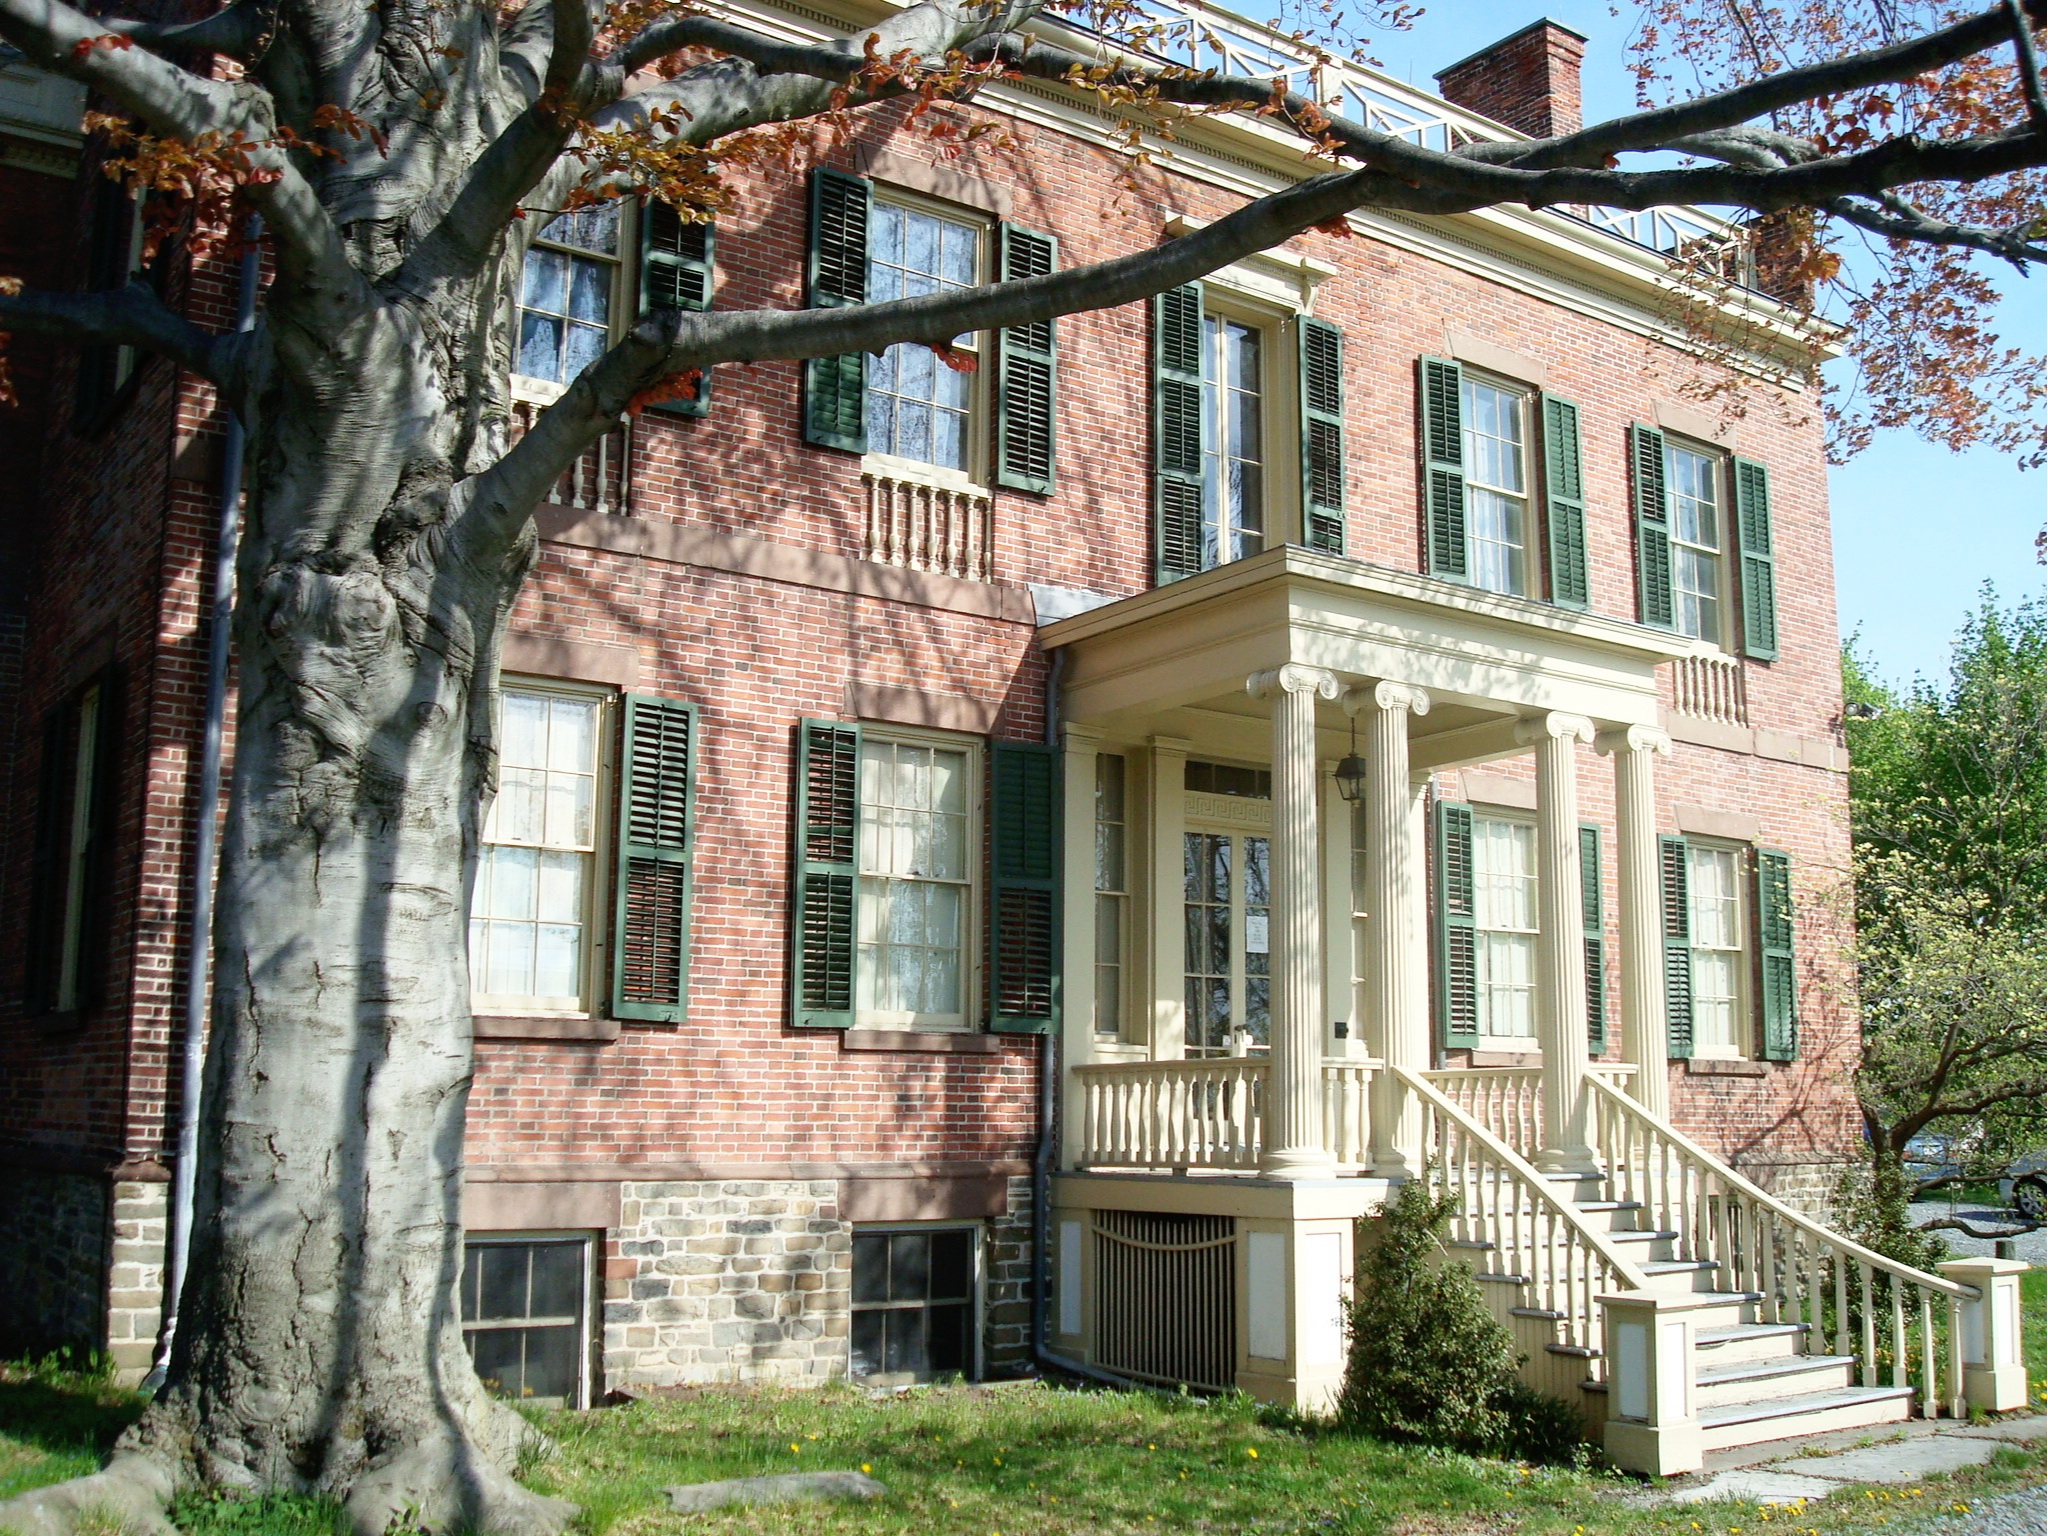 Historic Albany Foundation (Ten Broeck Mansion